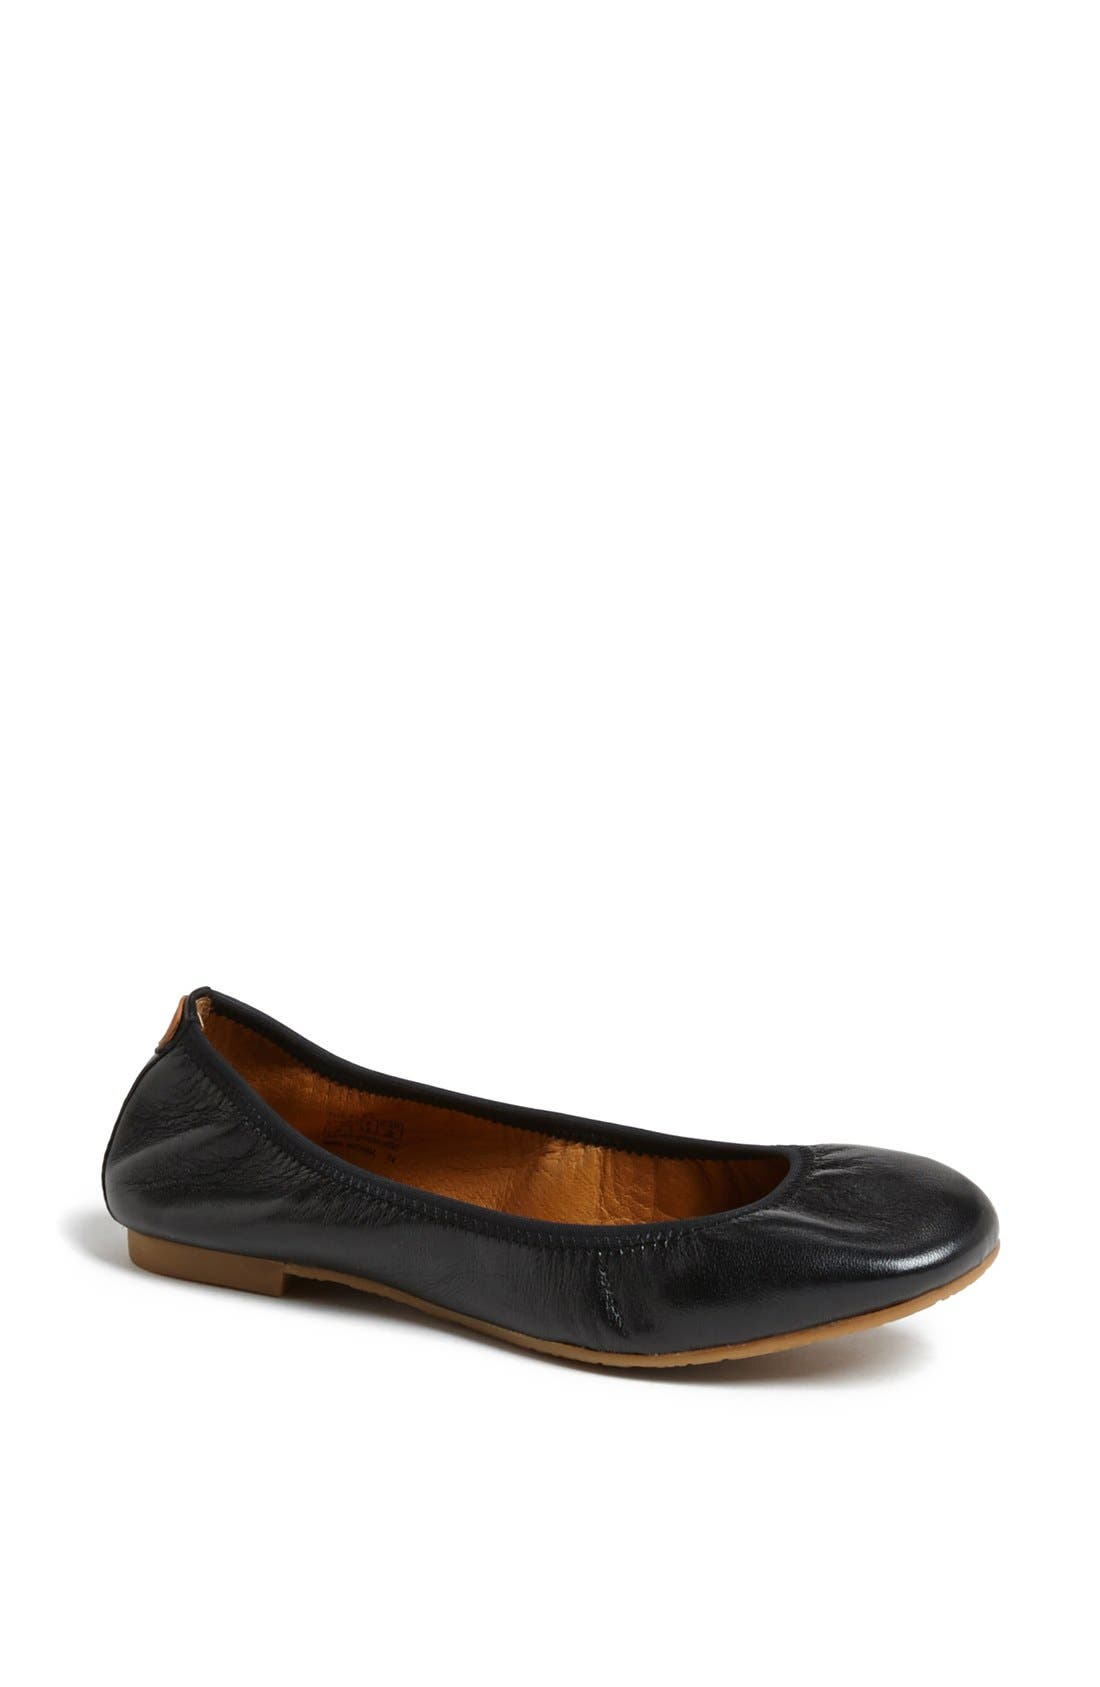 Main Image - Juil 'The Flat' Earthing Leather Ballet Flat